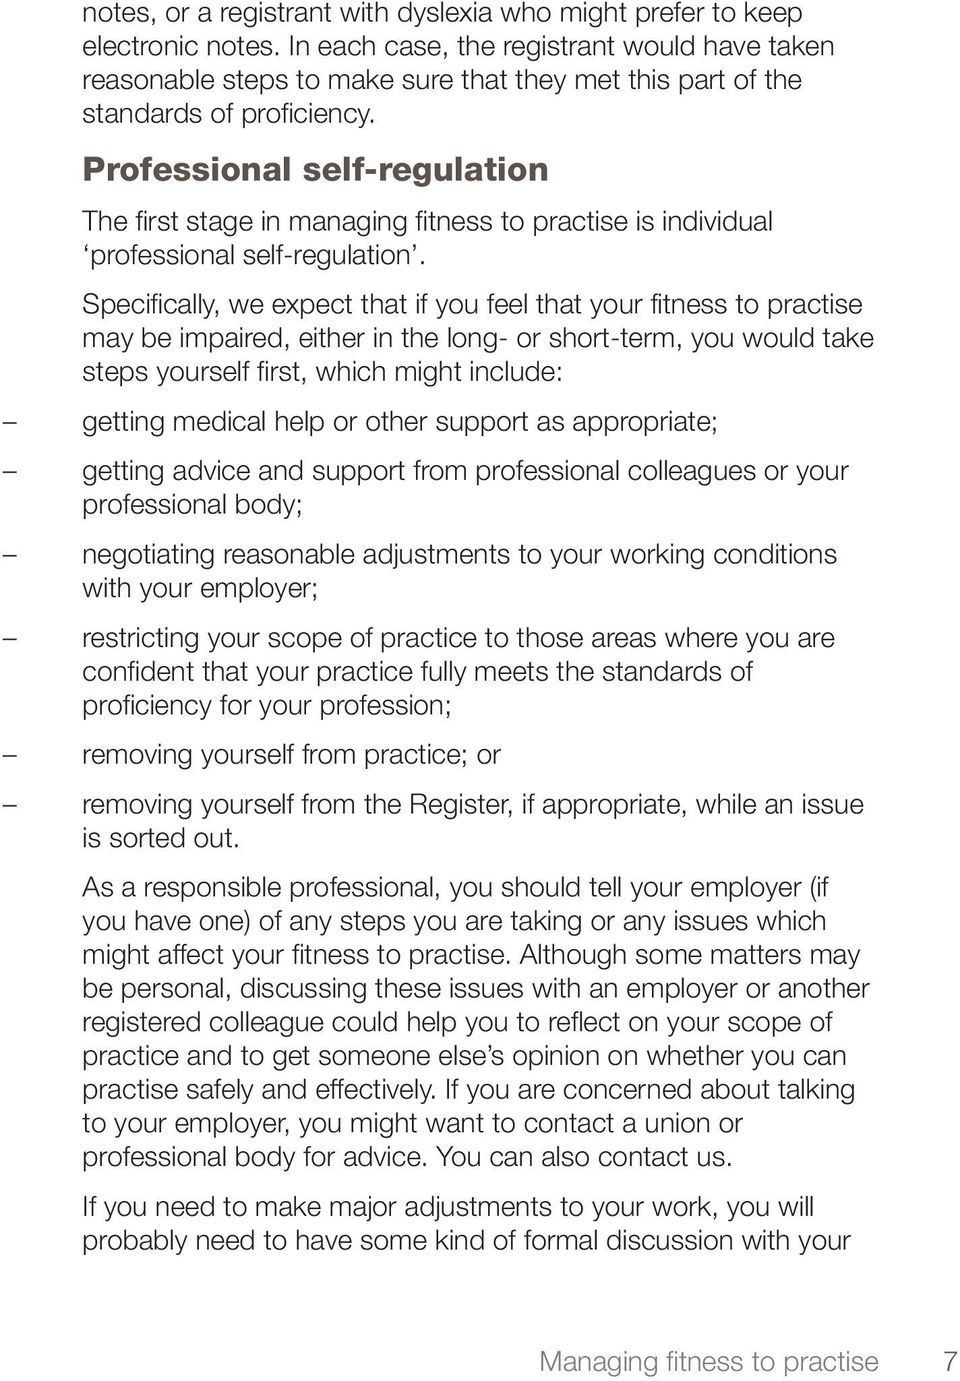 Professional self-regulation The first stage in managing fitness to practise is individual professional self-regulation.